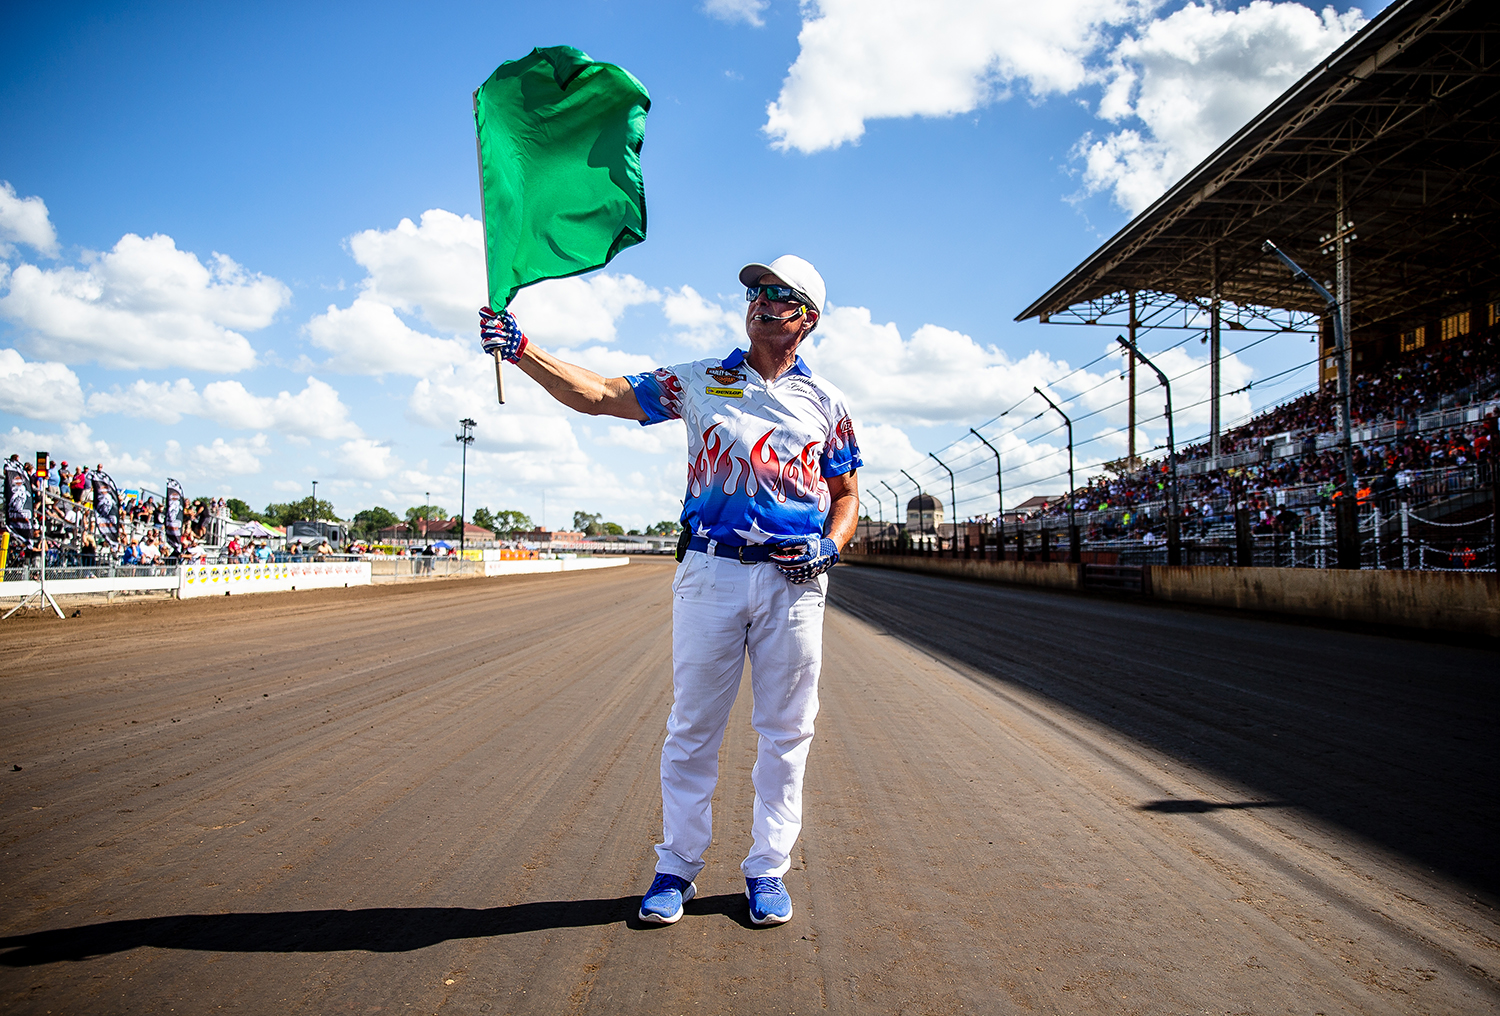 Official flagman Bubba Blackwell holds the green flag lifted by the high winds on the track prior to the start of the American Flat Track Springfield Mile II at the Illinois State Fairgrounds, Sunday, Sept. 2, 2018, in Springfield, Ill. [Justin L. Fowler/The State Journal-Register]